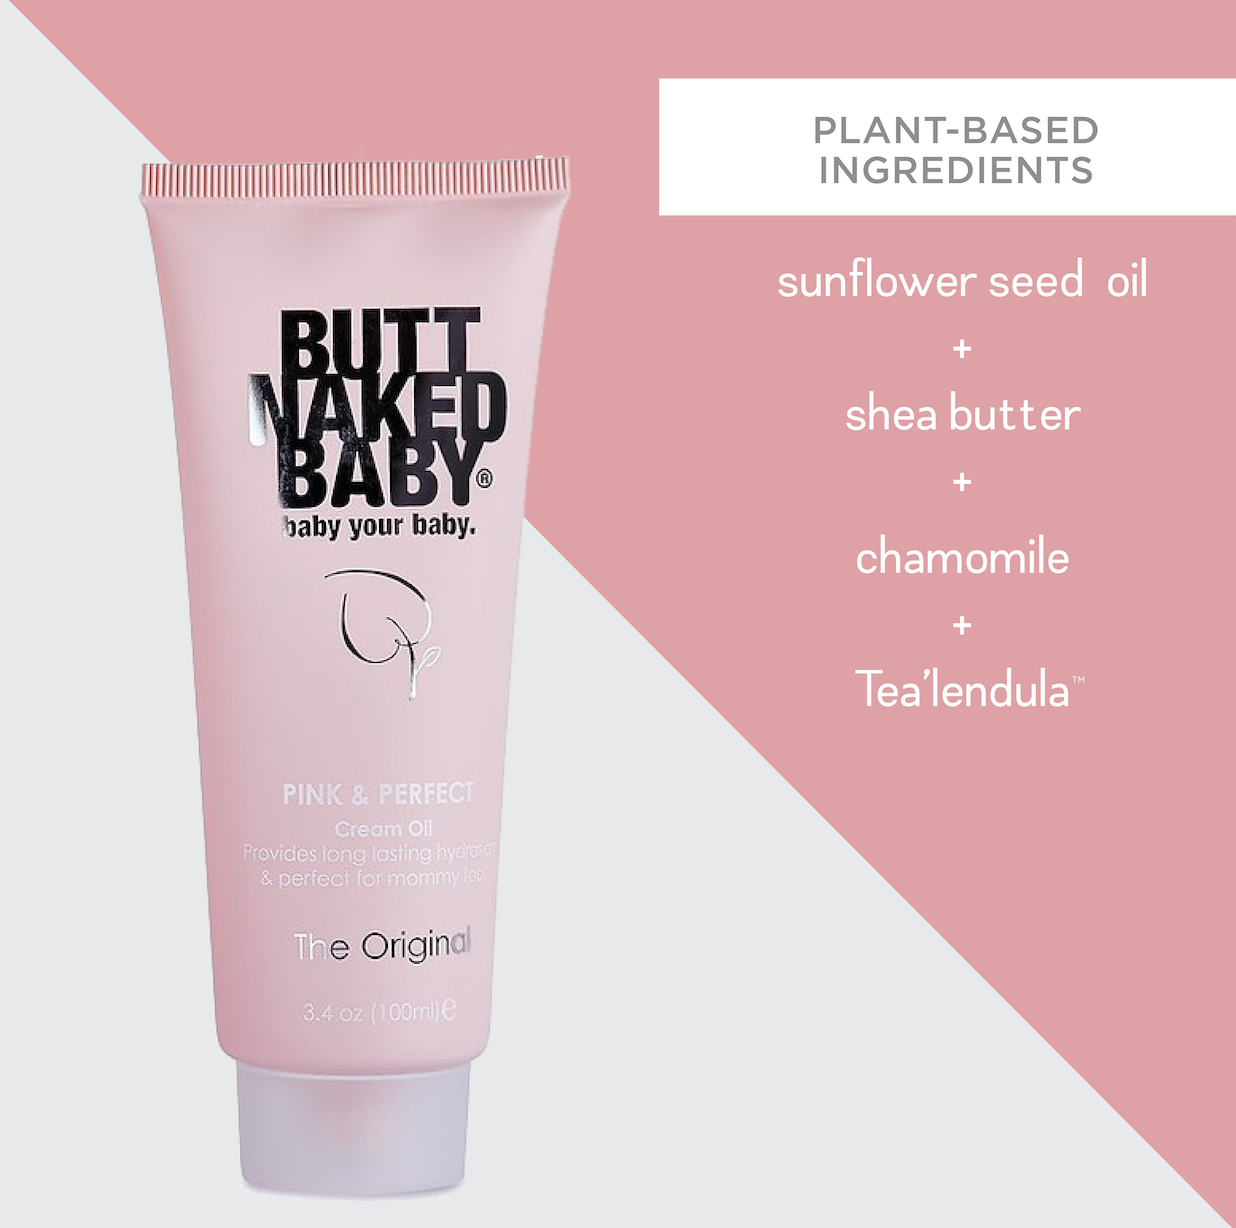 Pink & Perfect Cream Oil - ButtNakedBaby